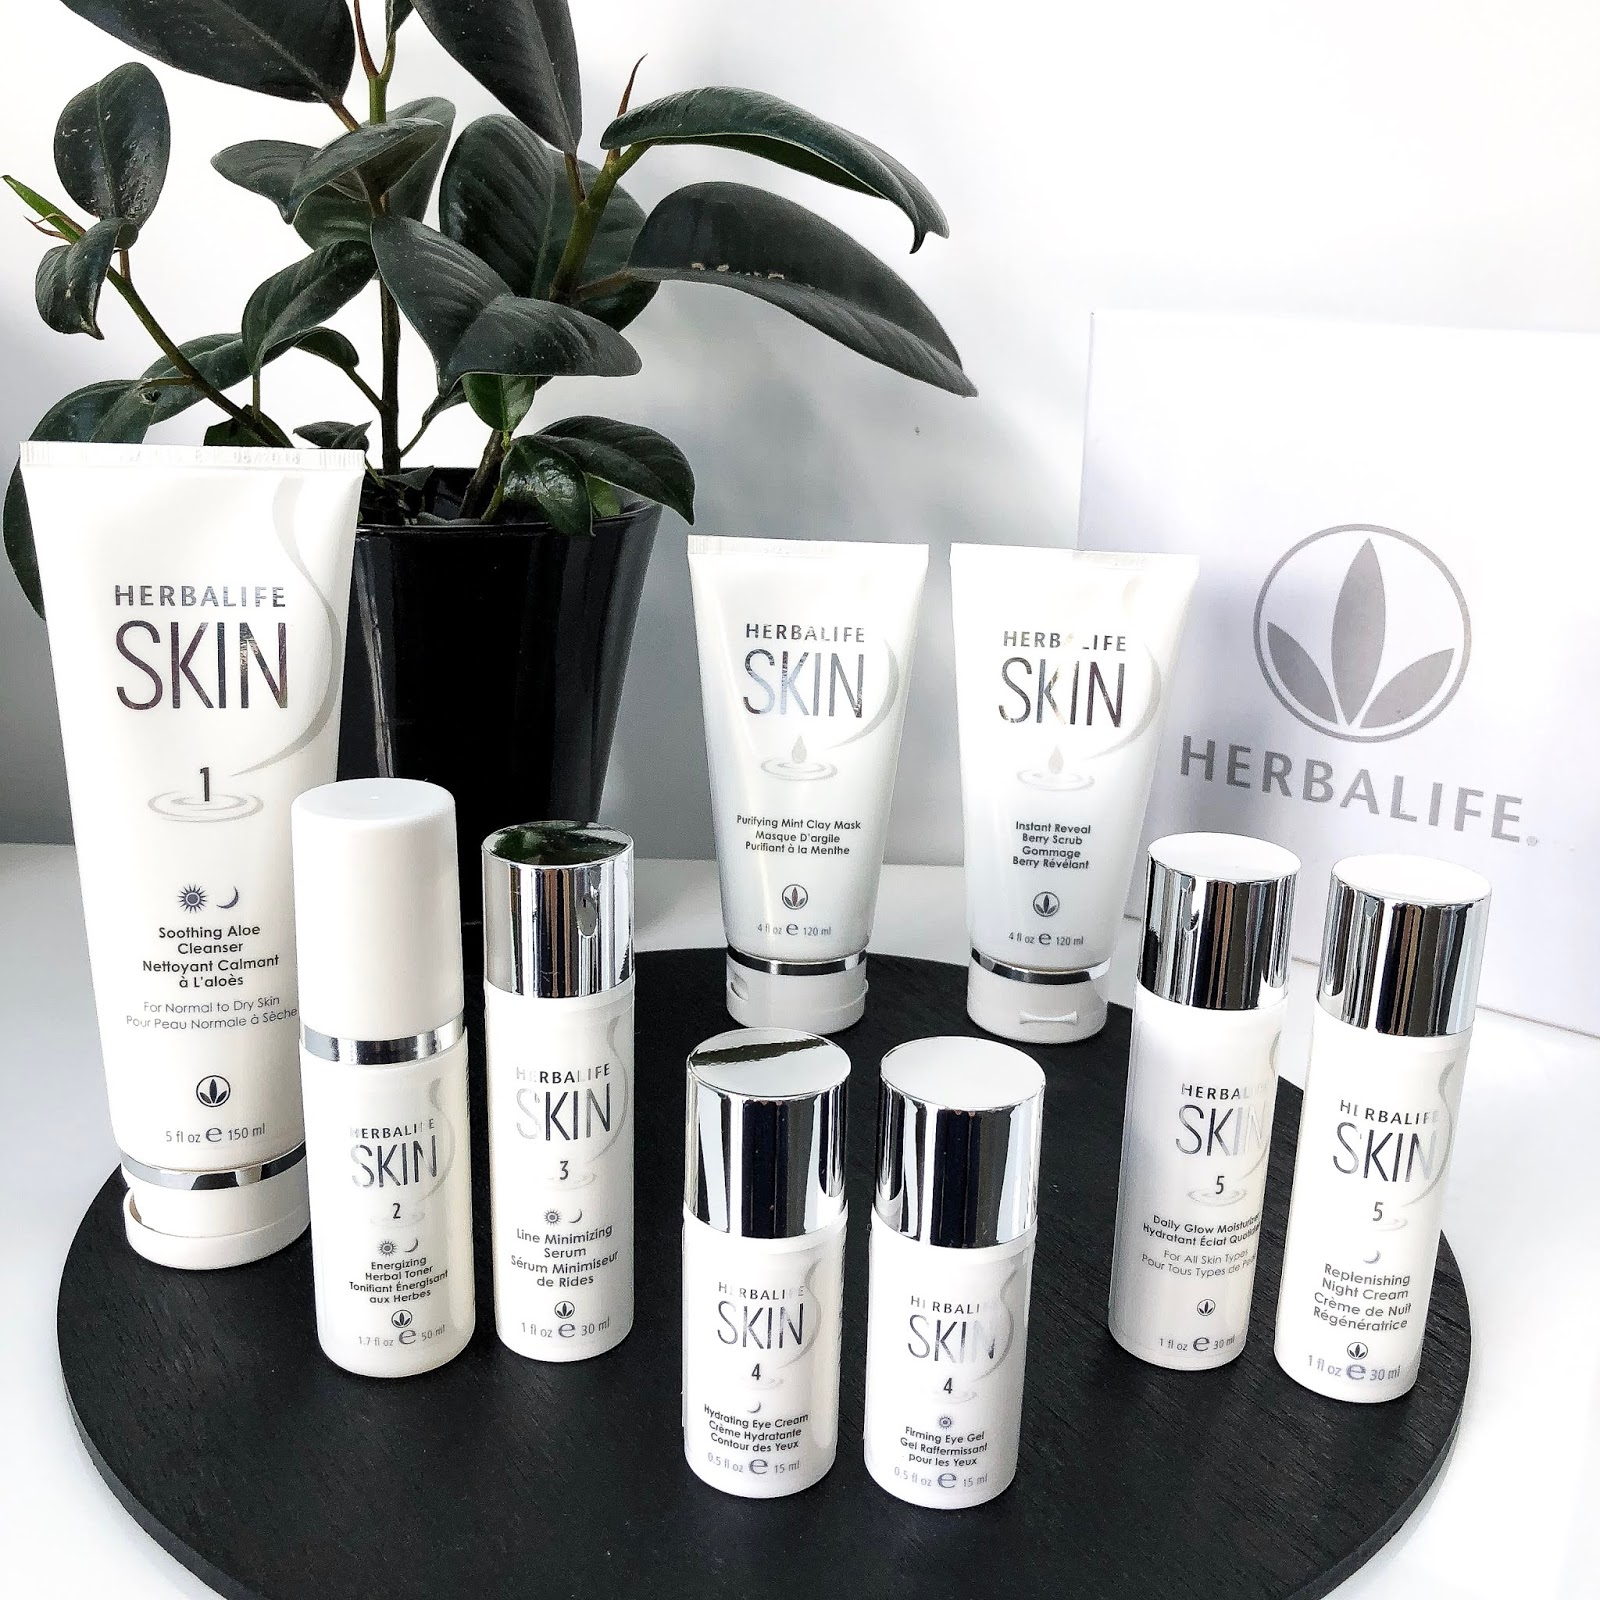 Herbalife Skin Care Reviews For Acne